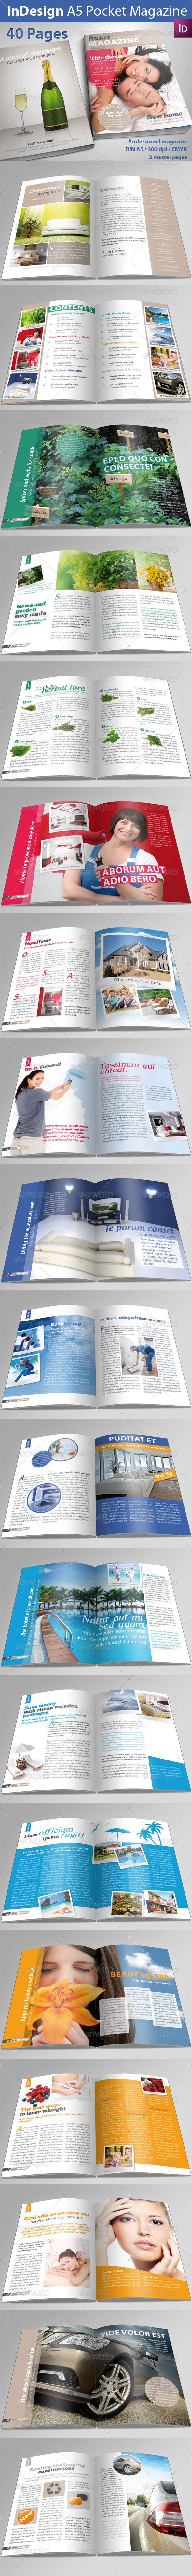 GraphicRiver A5 Pocket Magazine 1848670